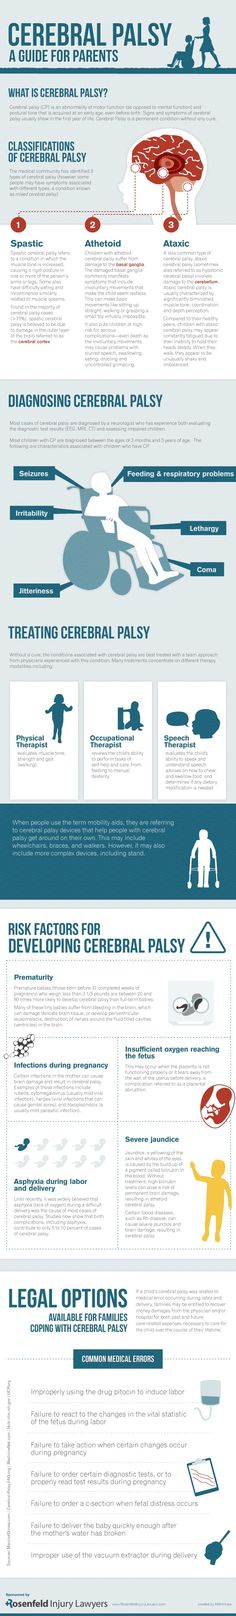 Cerebral Palsy - A Guide for Parents  http://pinterest.com/pin/12596073929672183/